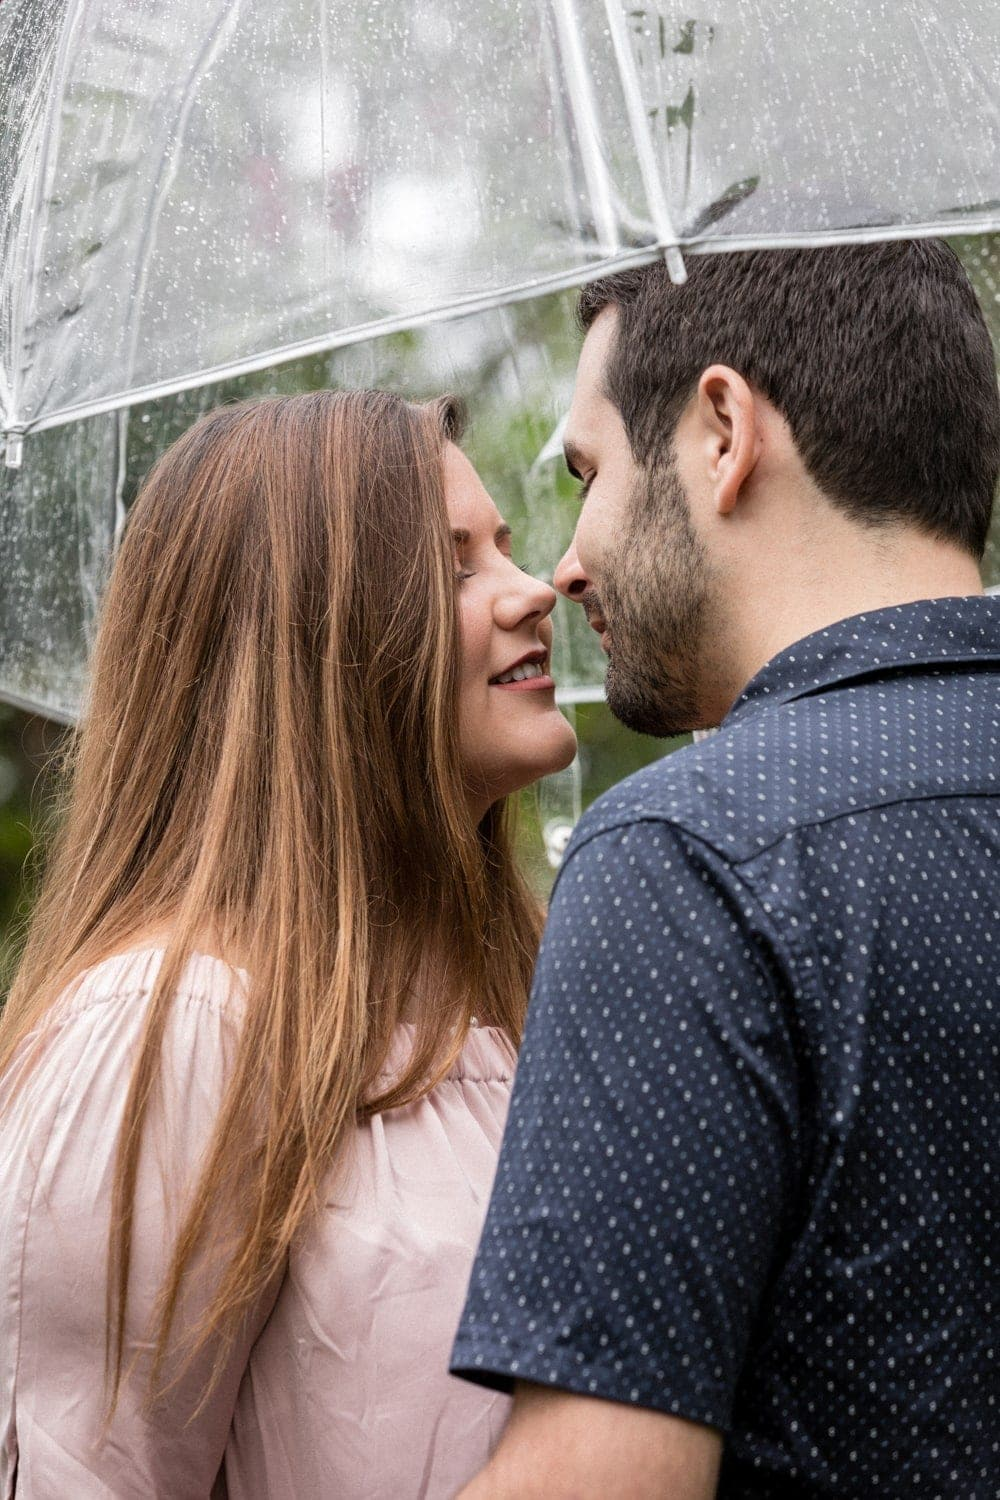 Couple share intimate moment under umbrella at La Paz Waterfall Gardens.